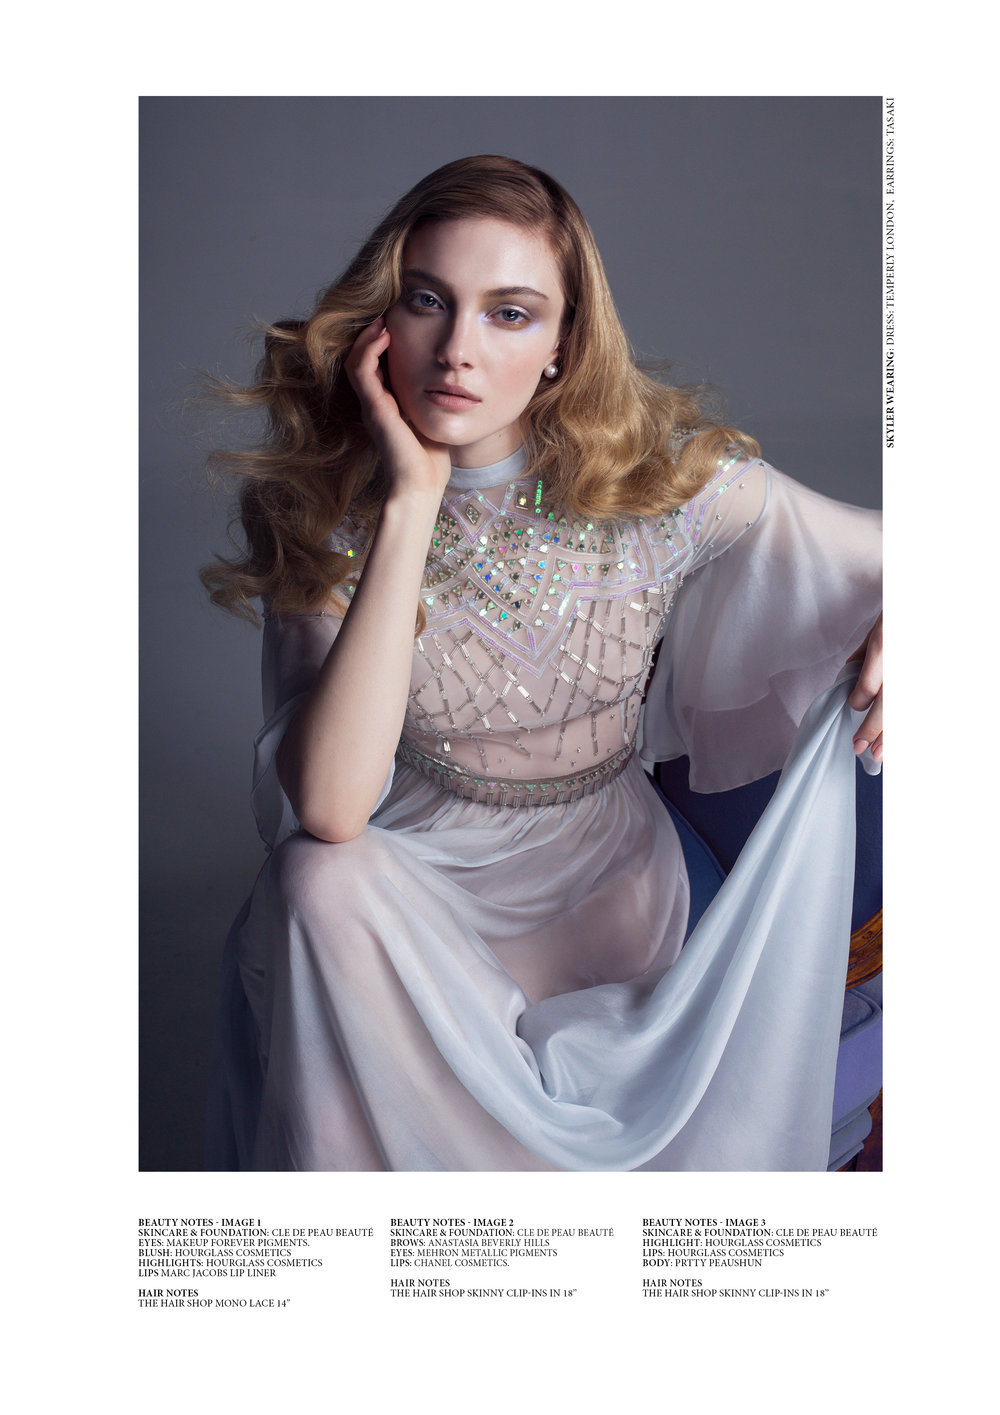 Skyler Samuels shot by Thom Kerr for Laud Magazine